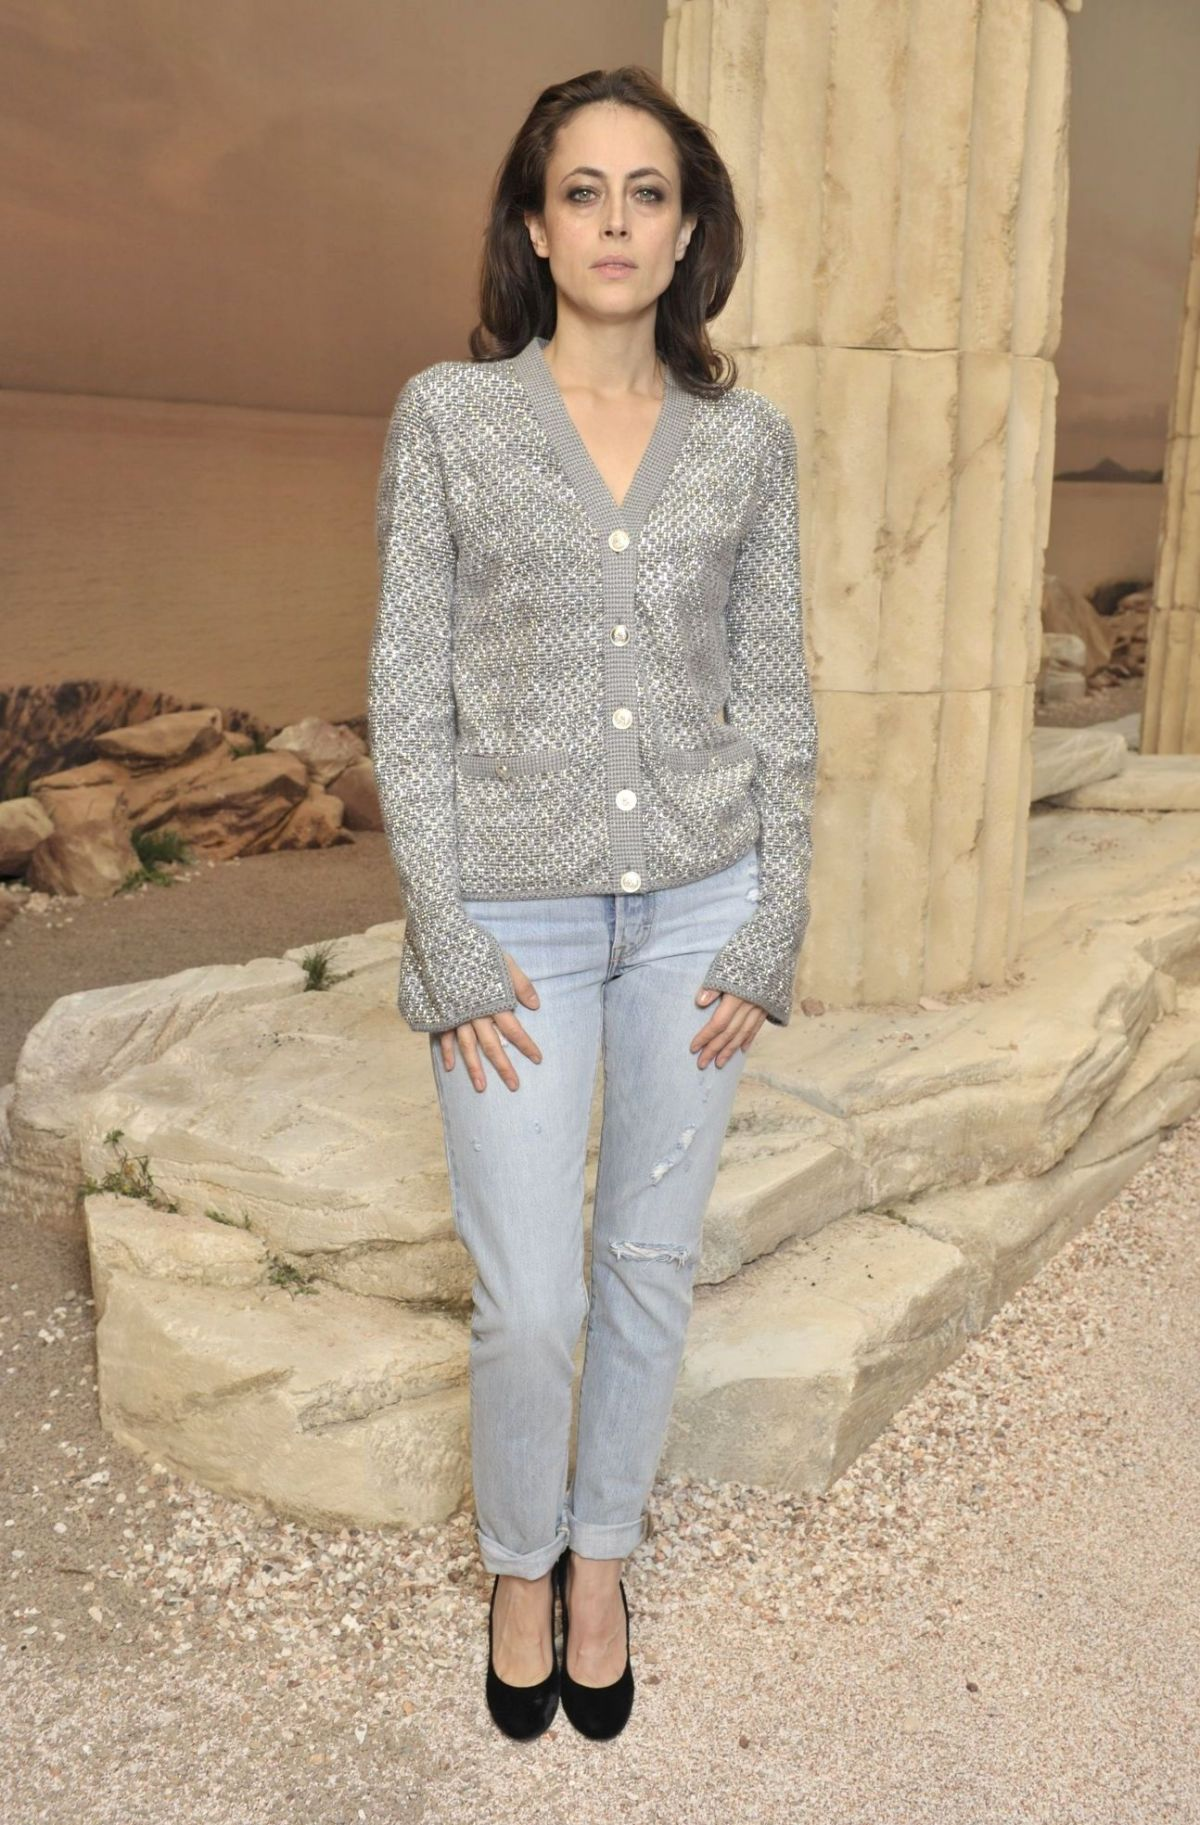 ANNE BEREST at Chanel Cruise 2017/2018 Collection Fashion ...